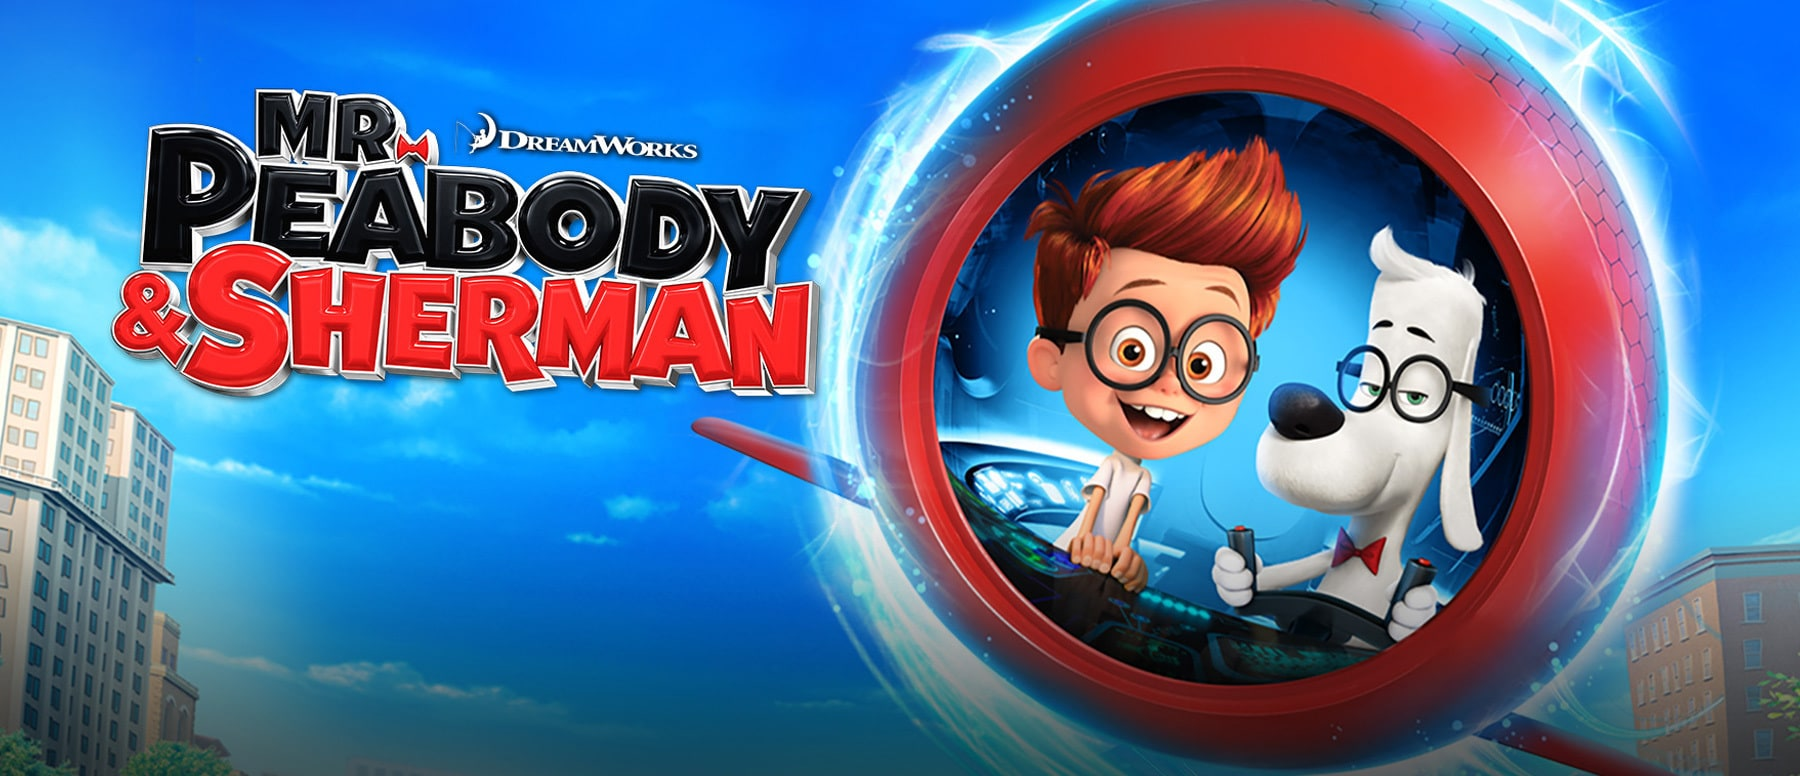 Mr. Peabody & Sherman Hero